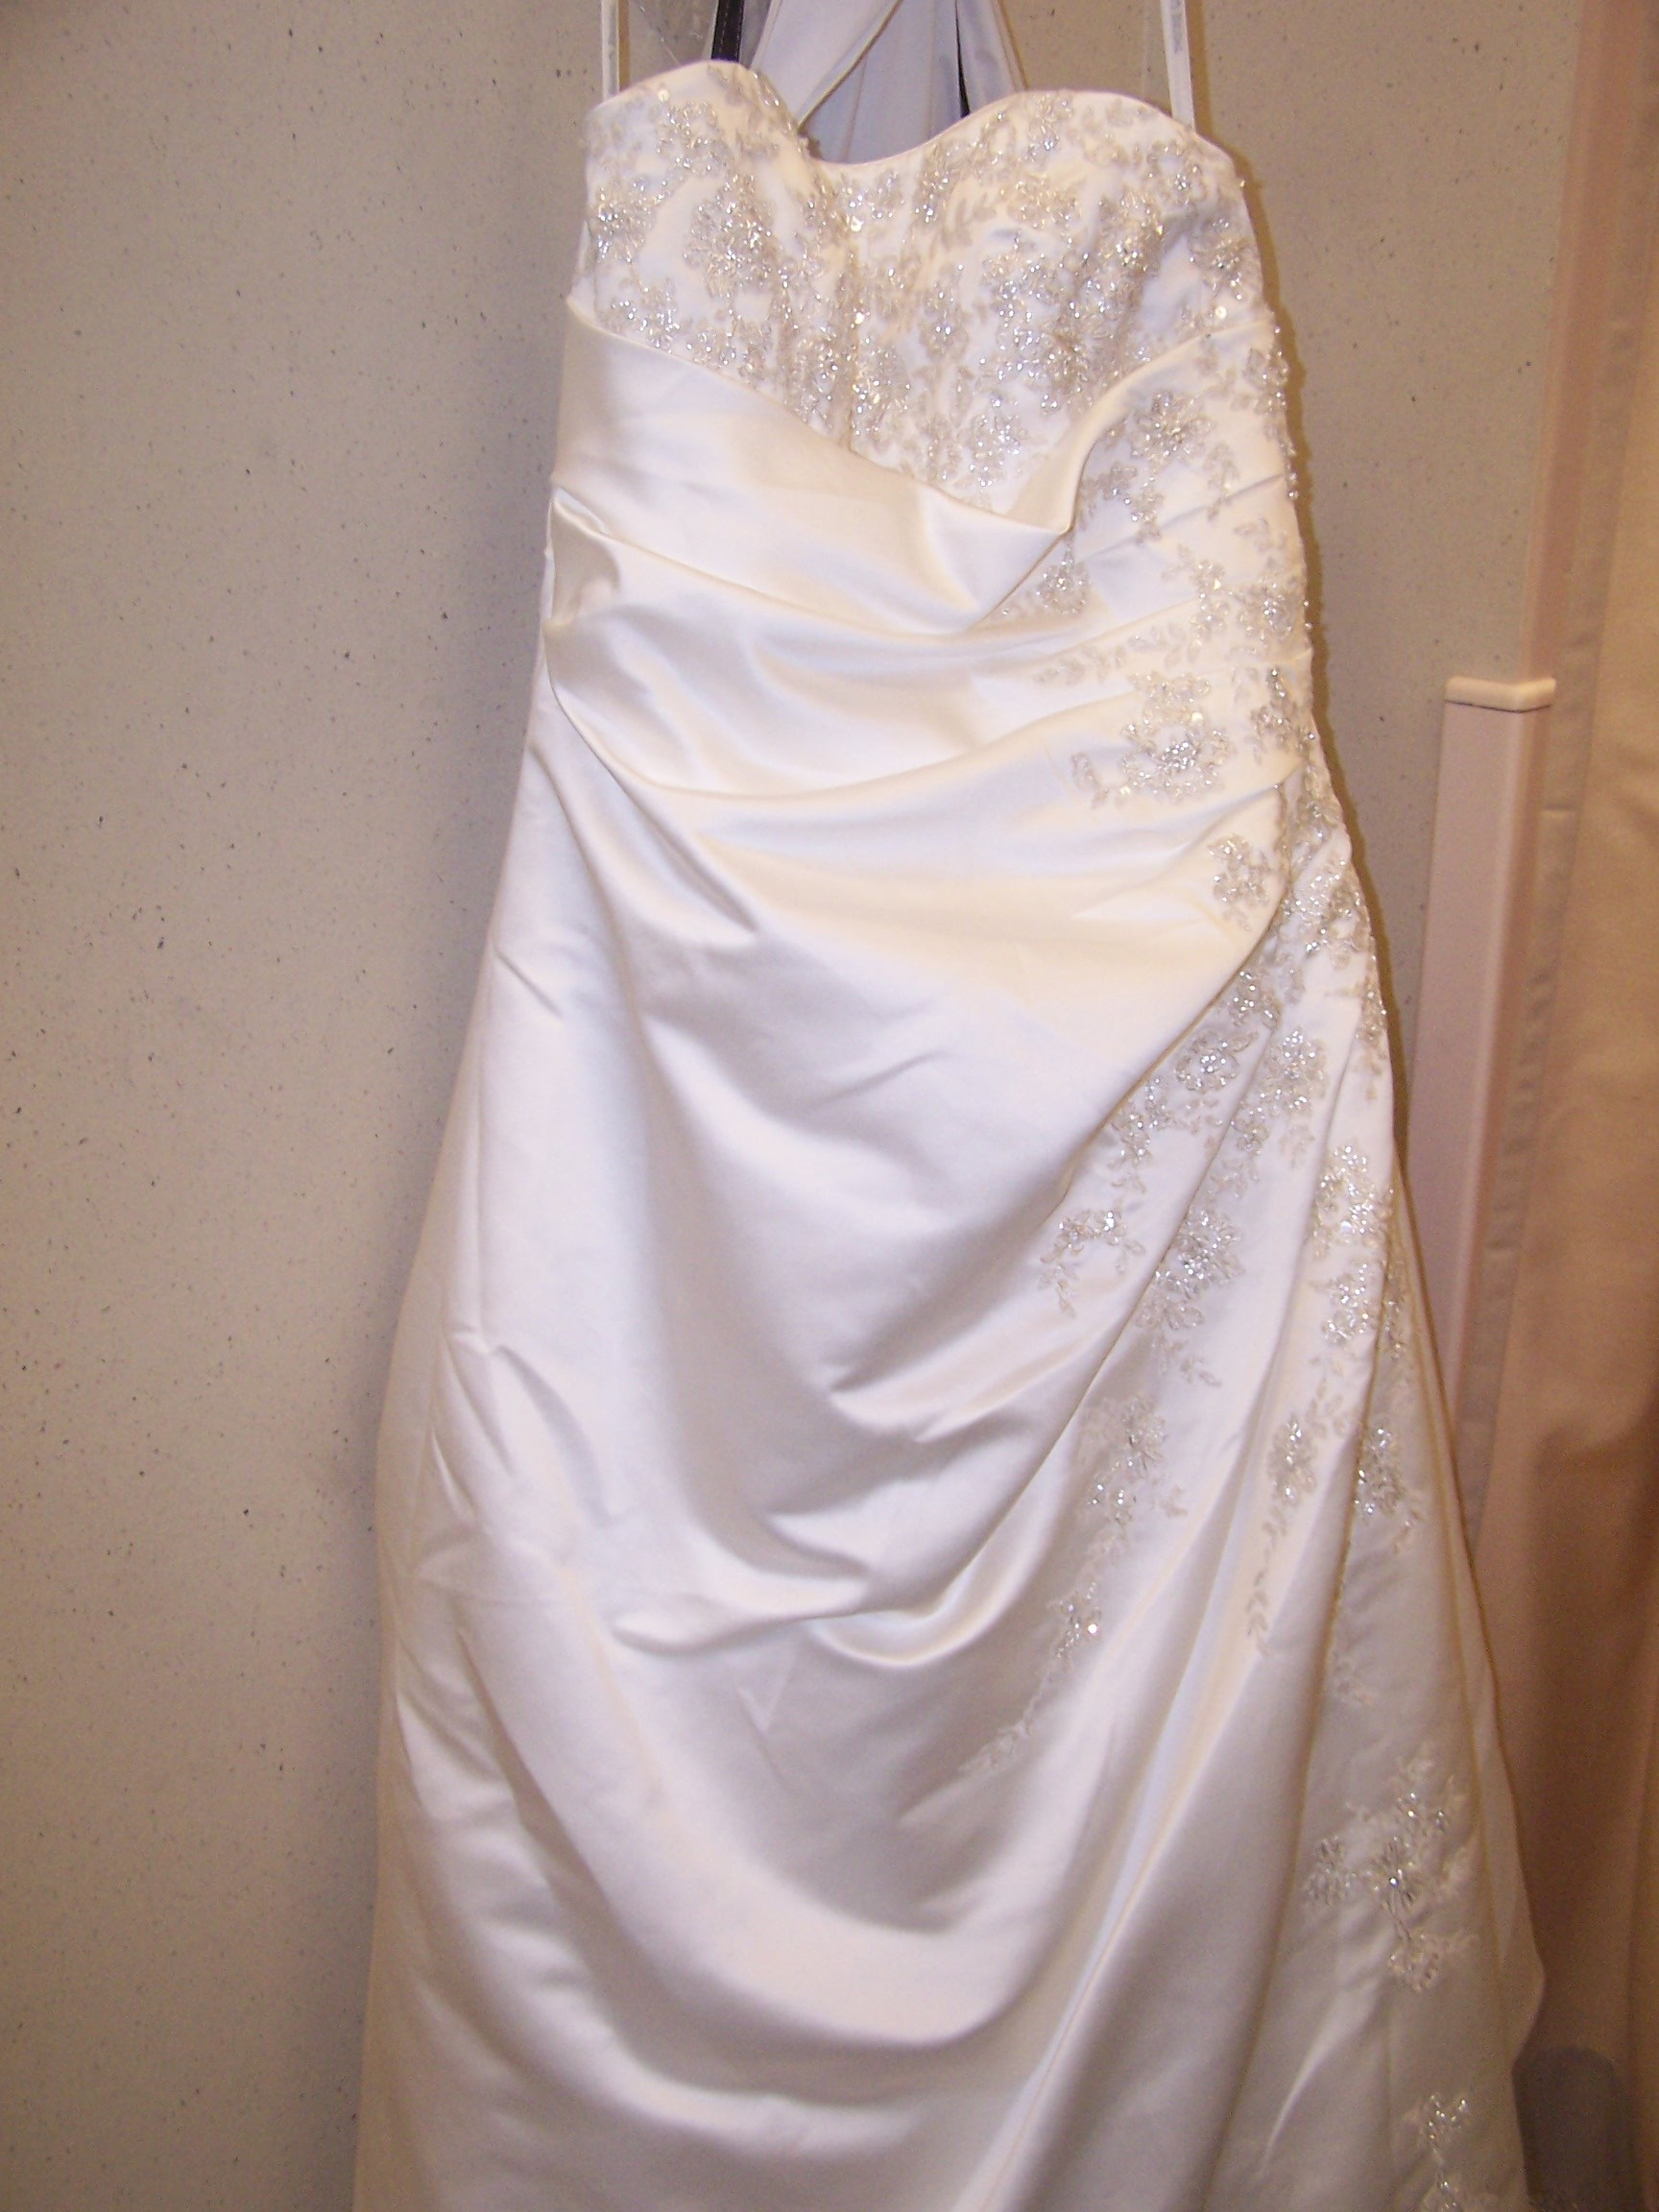 Ceremony, Reception, Flowers & Decor, Wedding Dresses, Fashion, dress